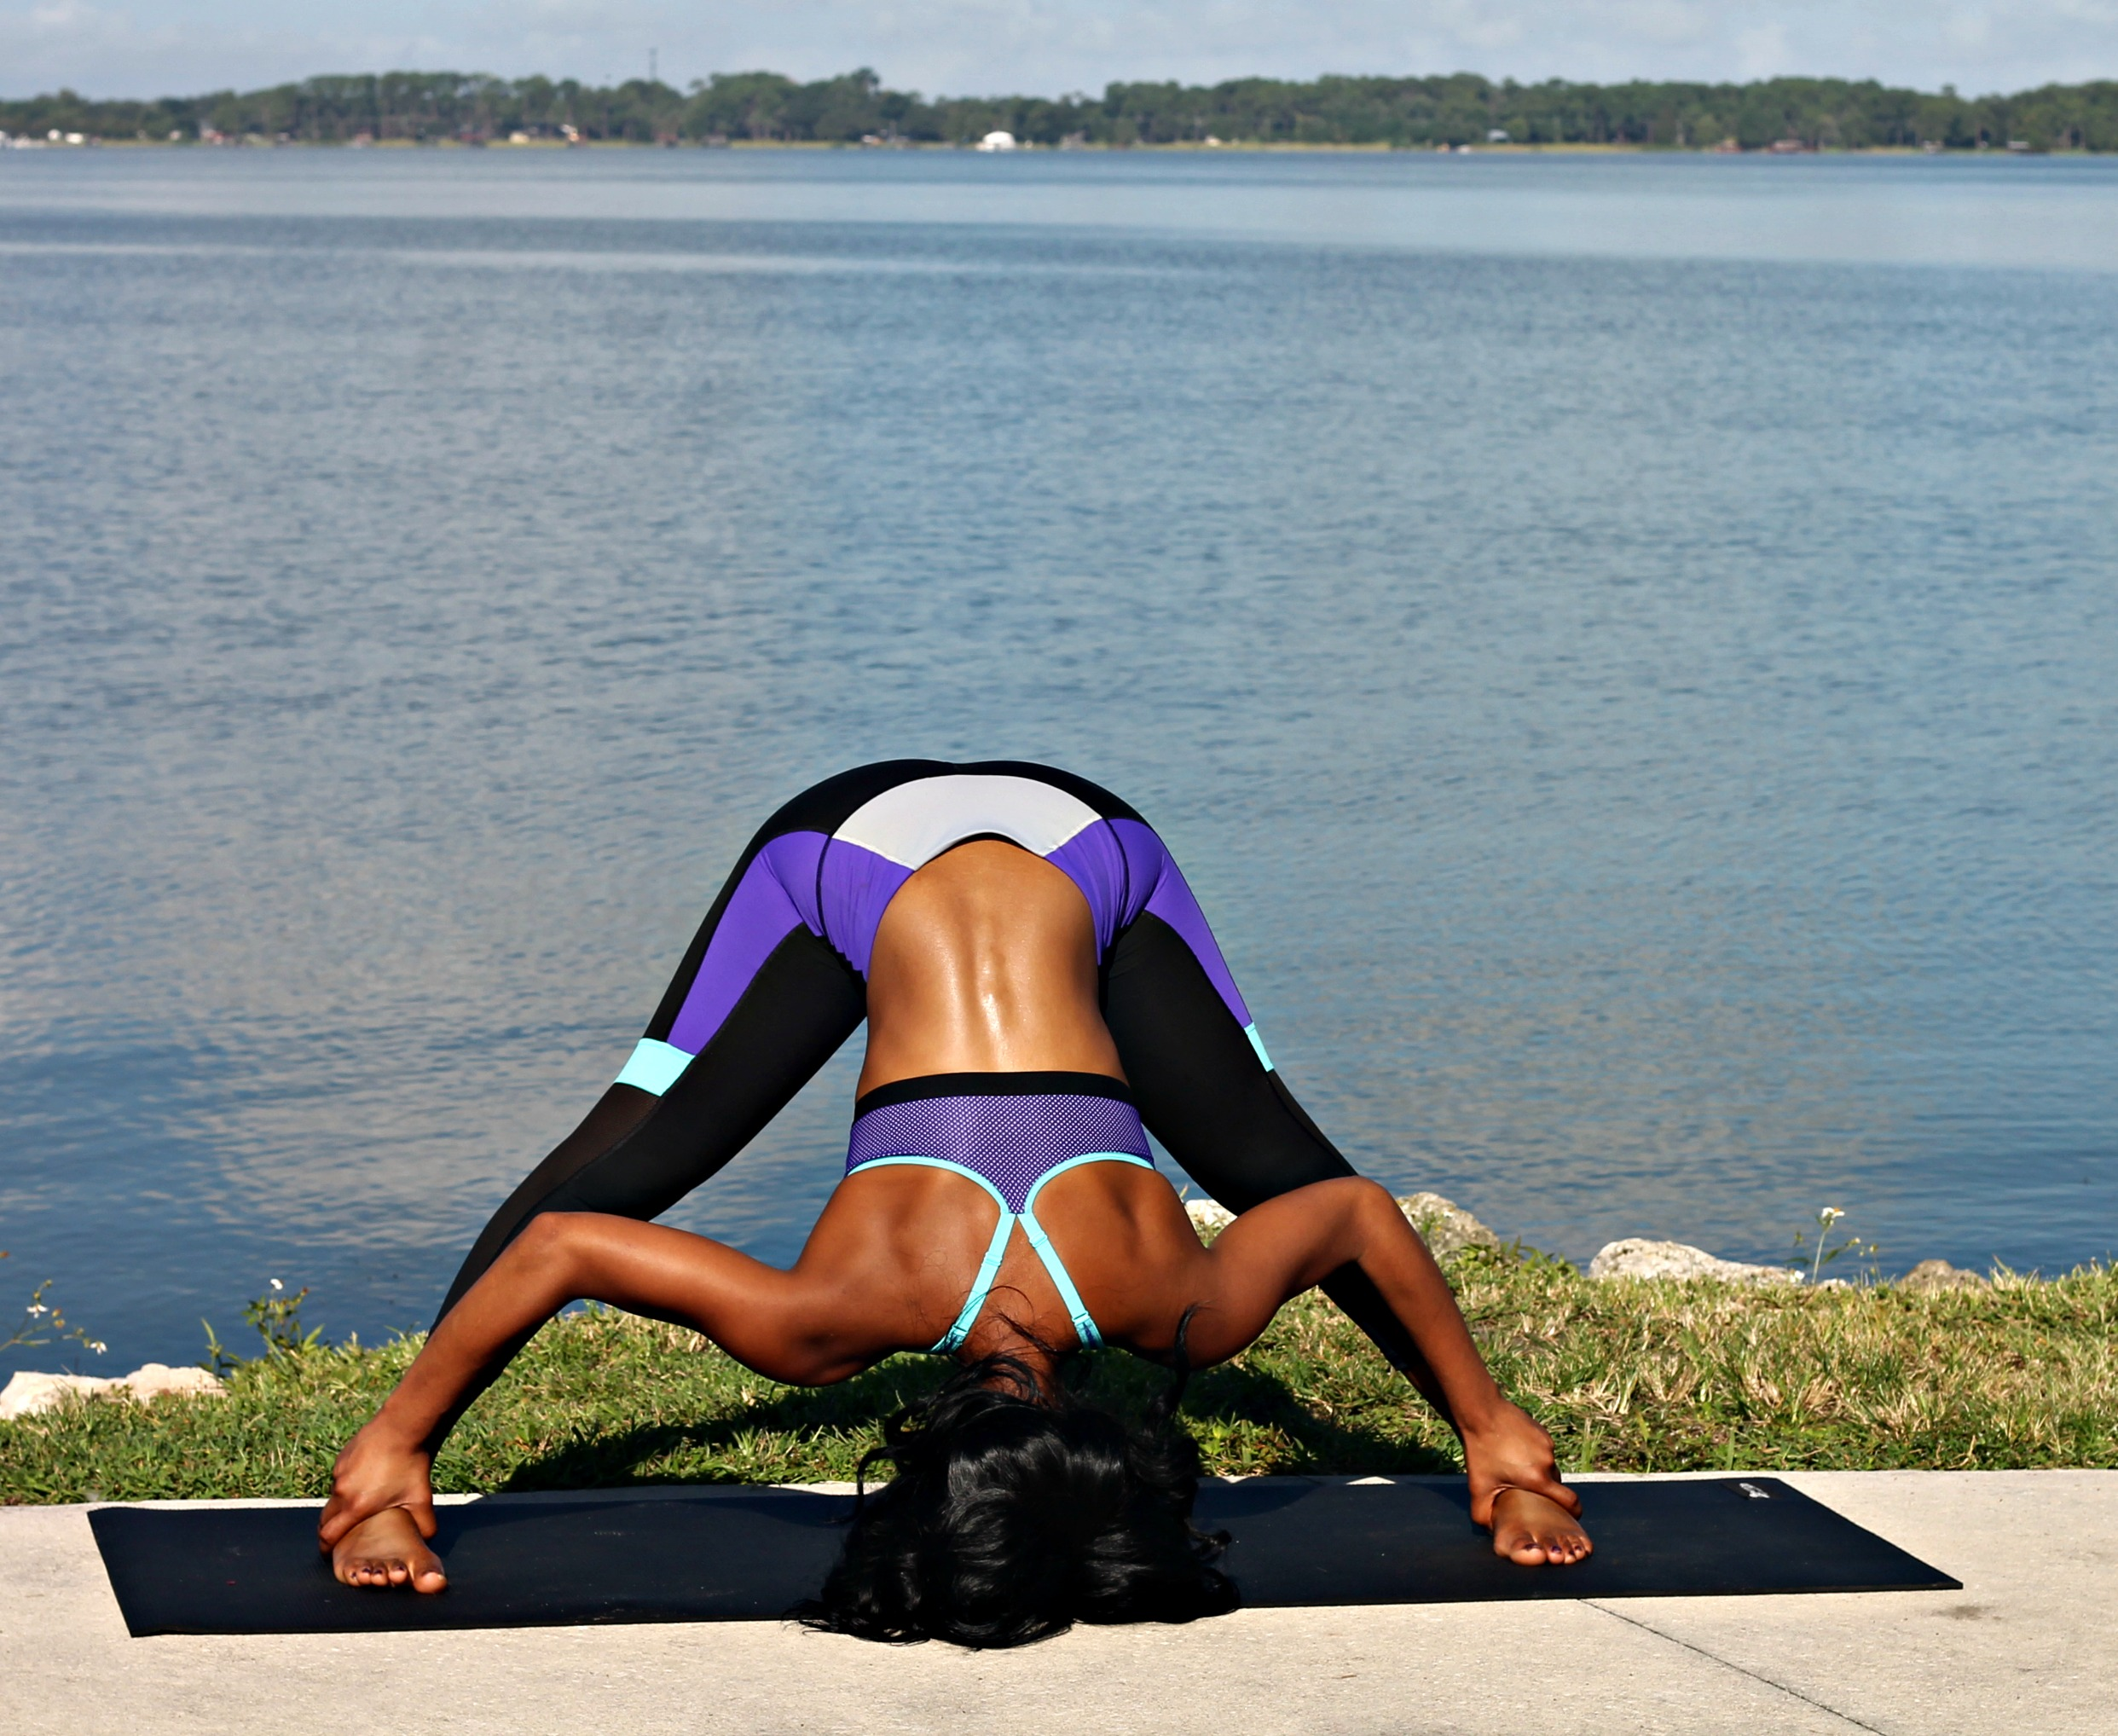 wide-legged-standing-forward-bend-yoga-pose-how-to-beginner-yogi-prasarita-padottanasana-hip-and-heart-opener-stretch-beauty-and-the-beat-blog